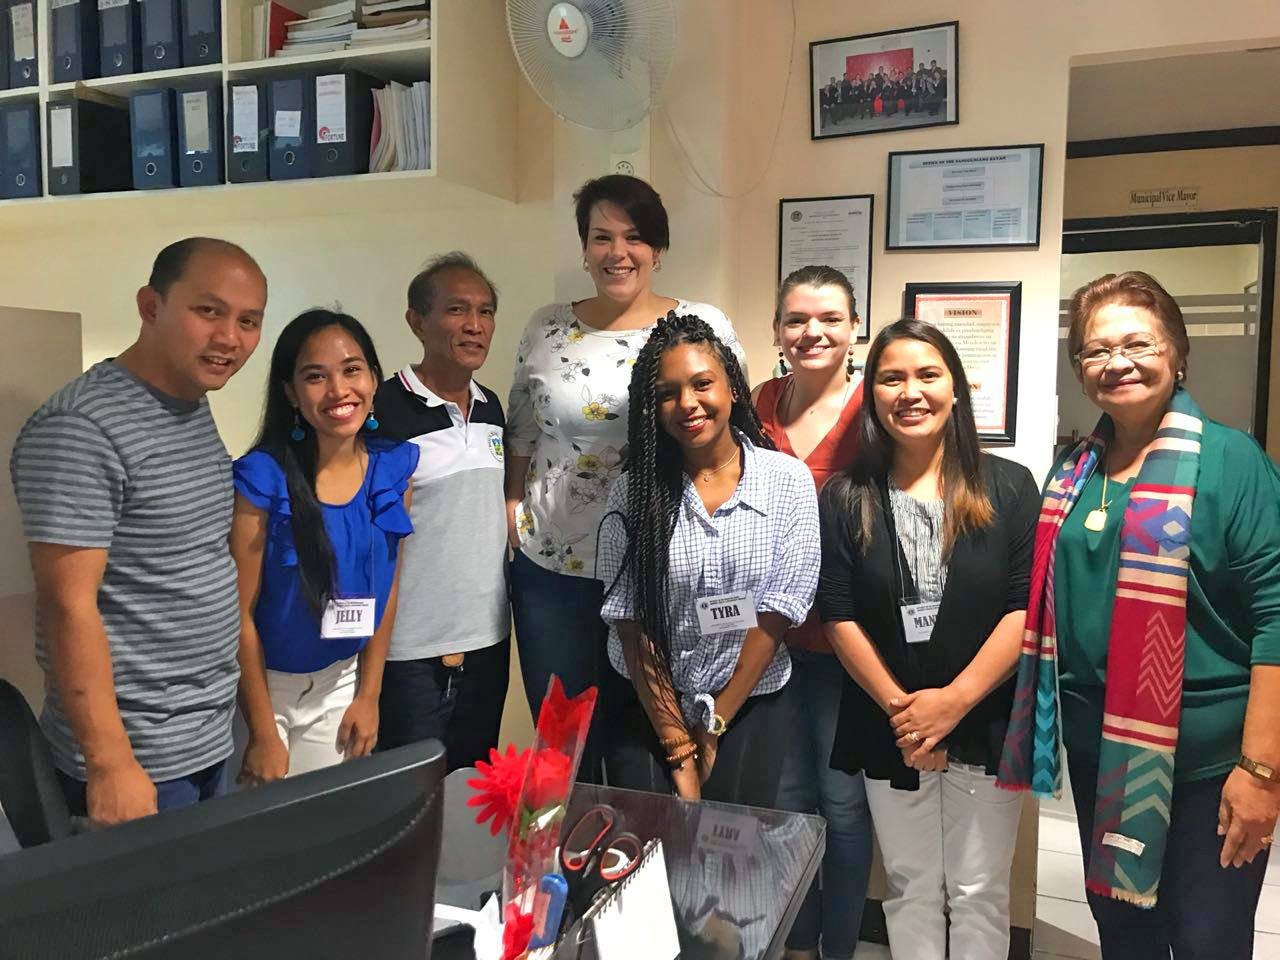 Meeting with the Municipal Counselor for Education in Mendez, Cavite. Planning upcoming youth program partnership in the Philippines